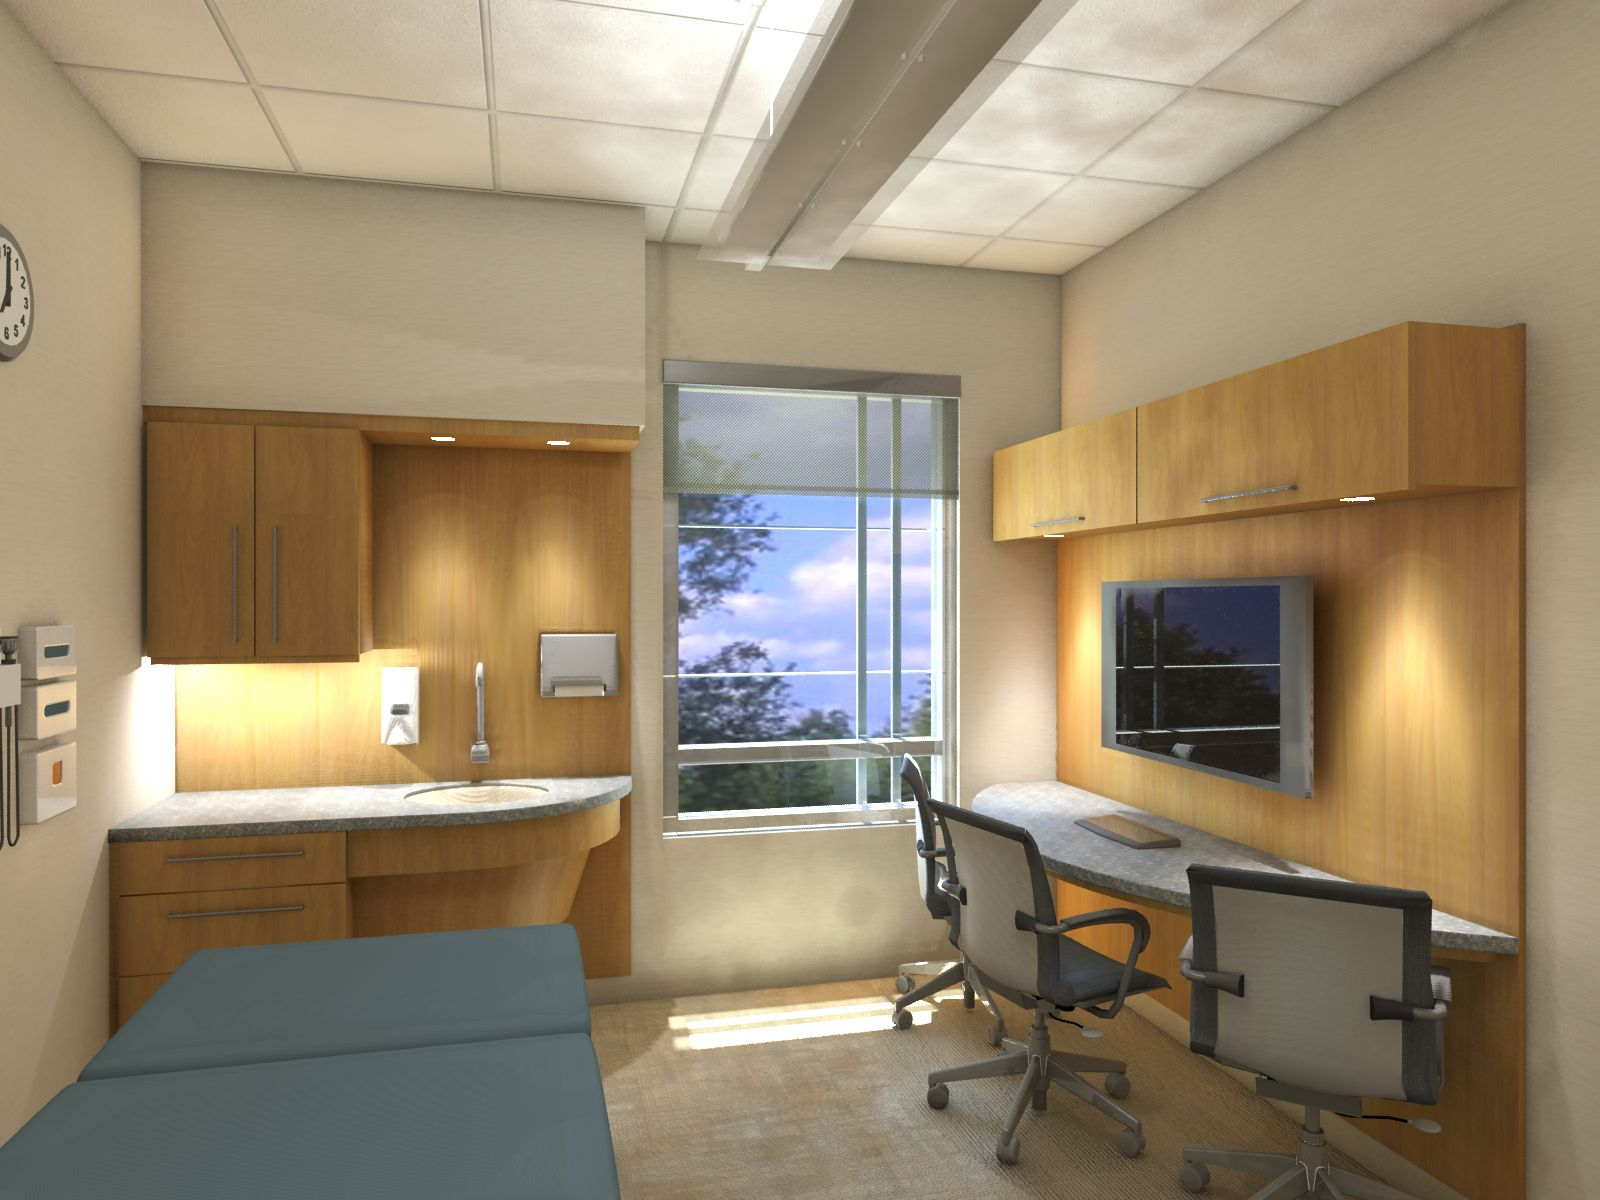 VIA Healthcare Design Resource Exam Room